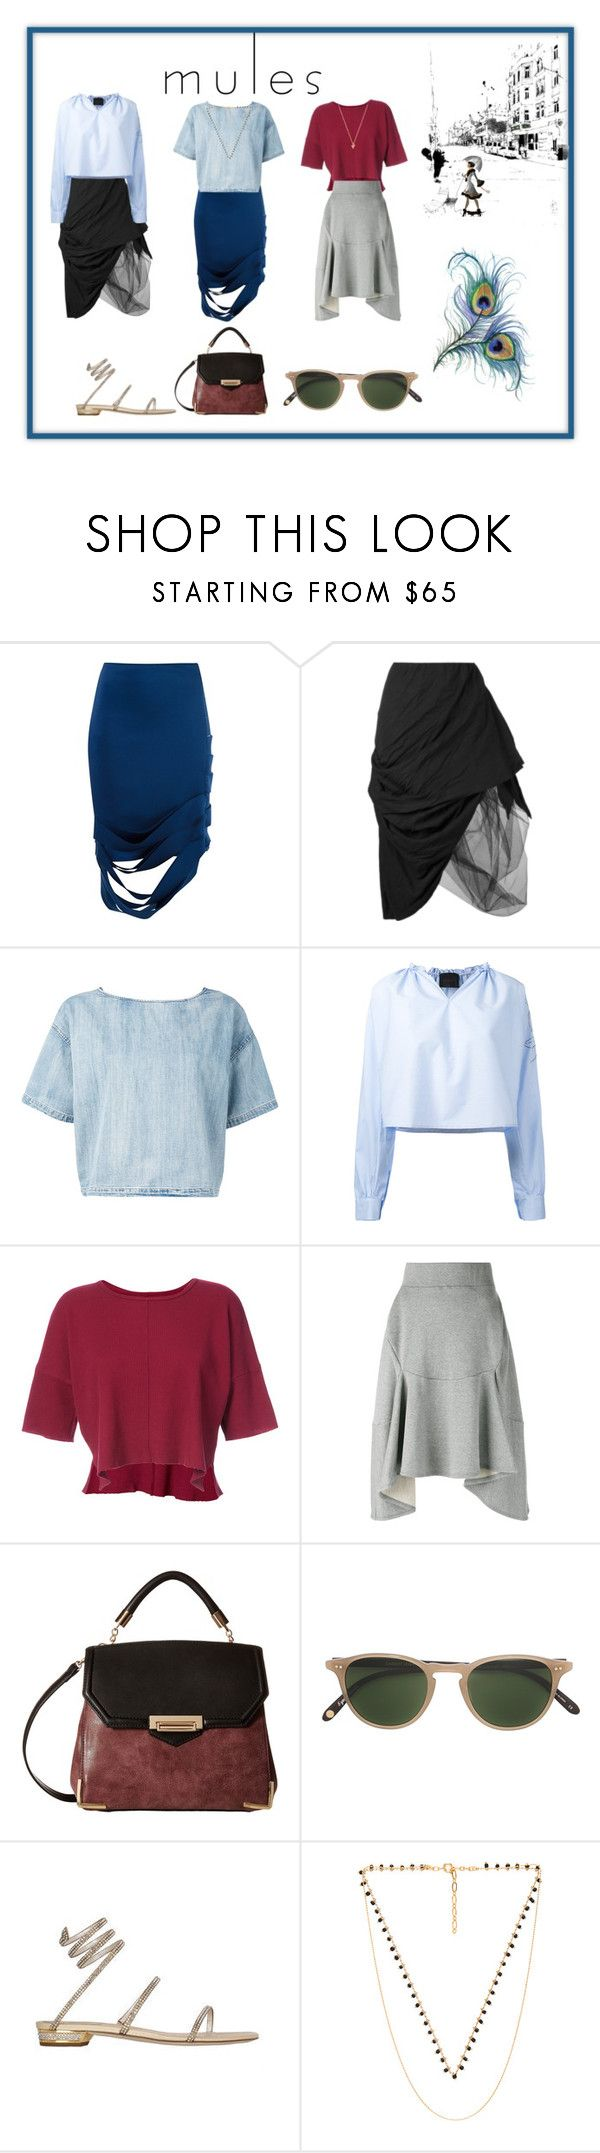 """mules¶"" by racheal-taylor ❤ liked on Polyvore featuring Gloria Coelho, Nostra Santissima, Diesel, Eggs, daniel patrick, Junya Watanabe, Gabriella Rocha, Garrett Leight, Five and Two and CAM"